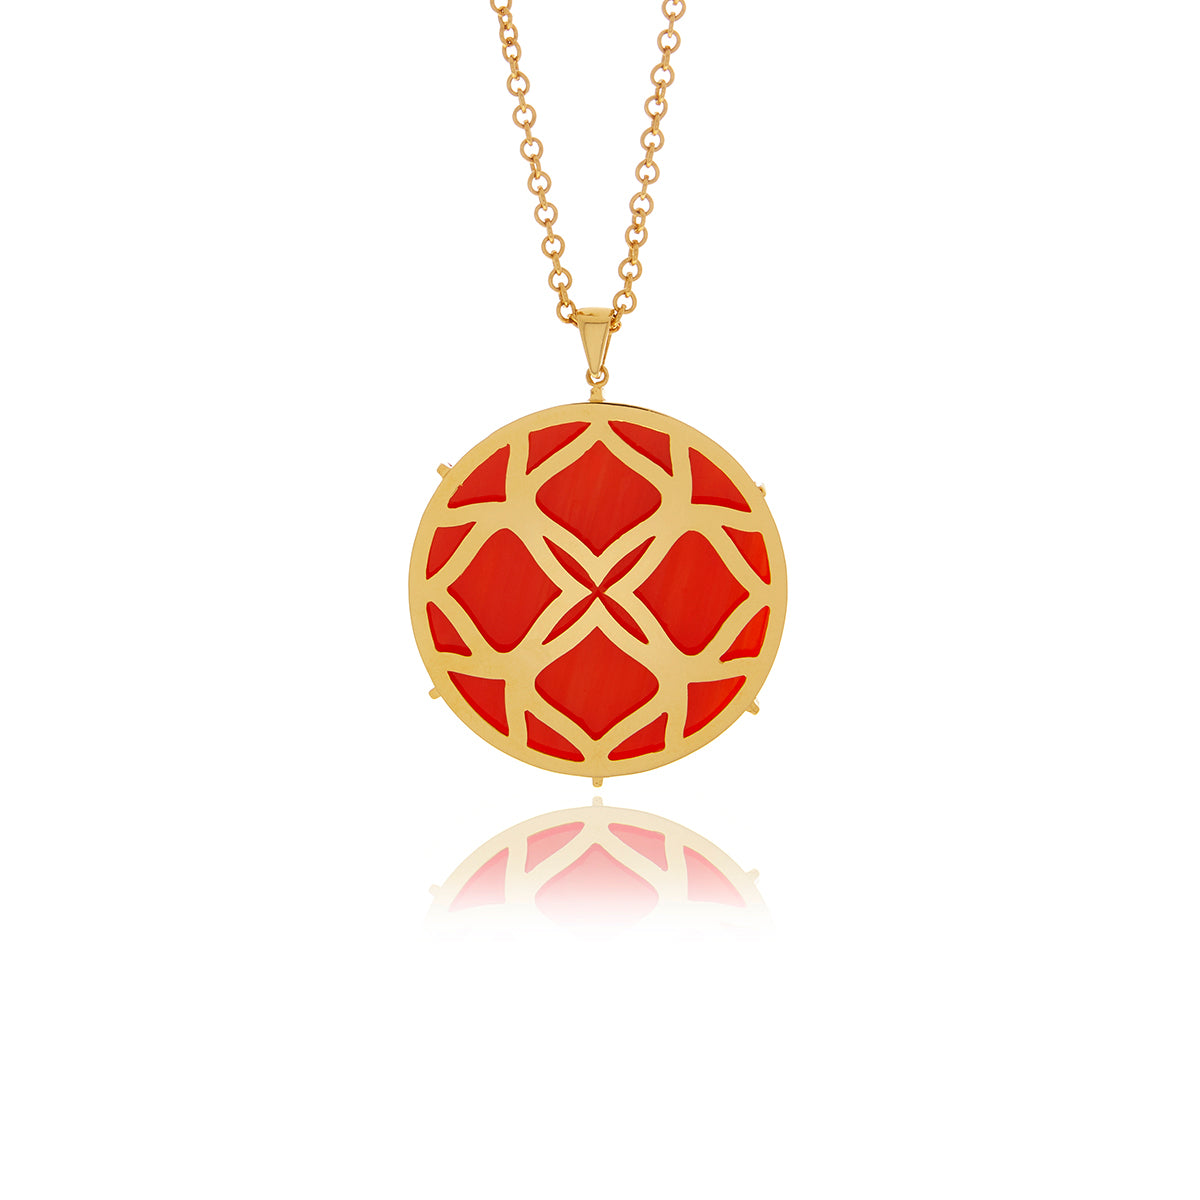 Signature Gold and Garnet Medallion Necklace - Georgina Jewelry